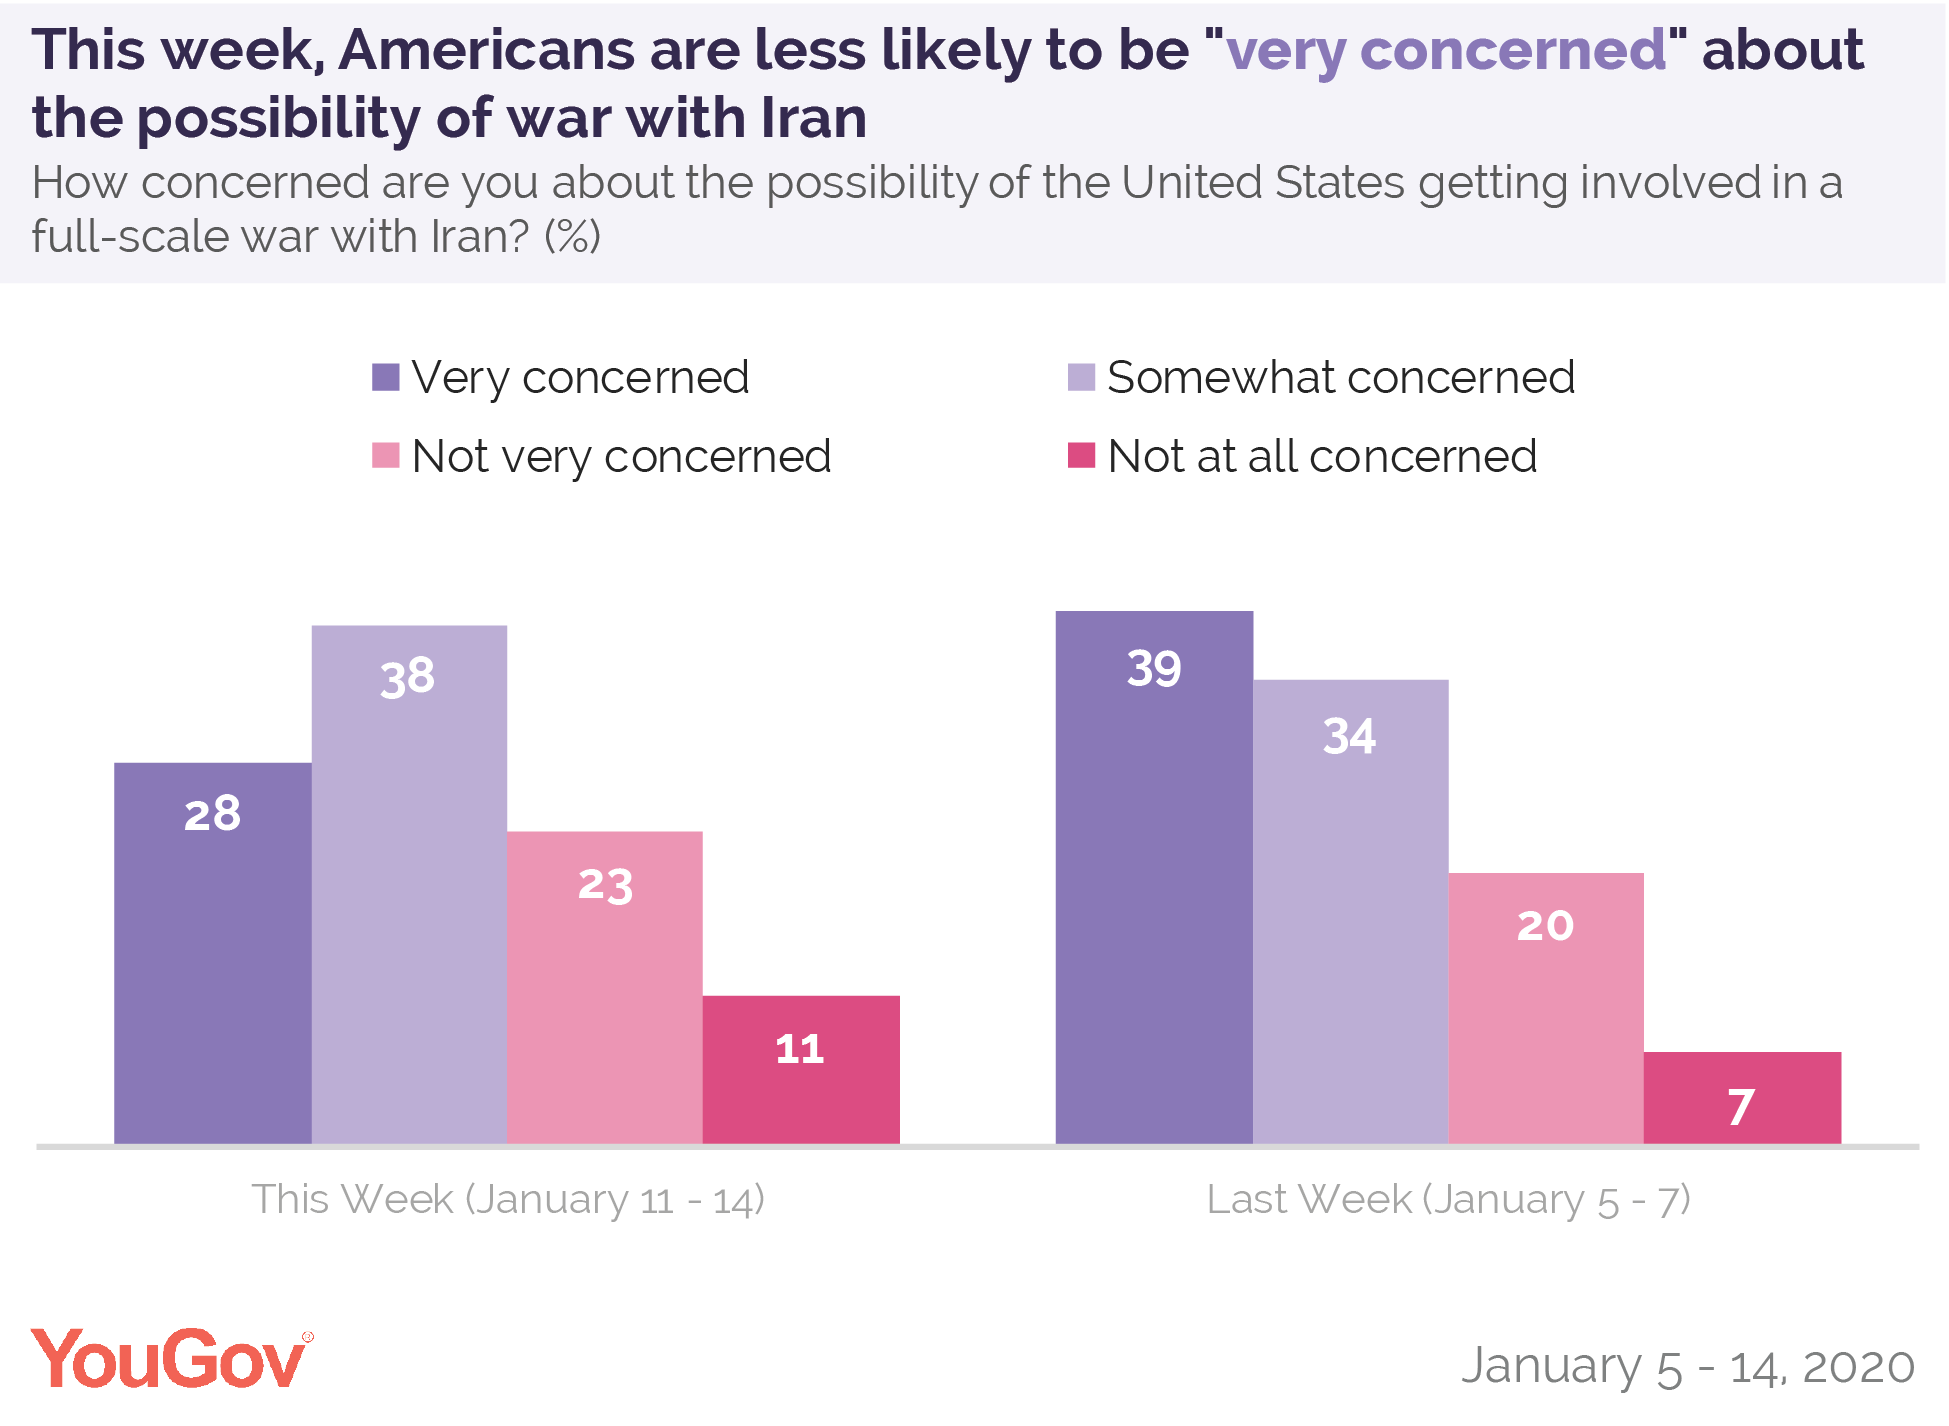 This week, Americans are less likely to be very concerned about the possibility of war with Iran